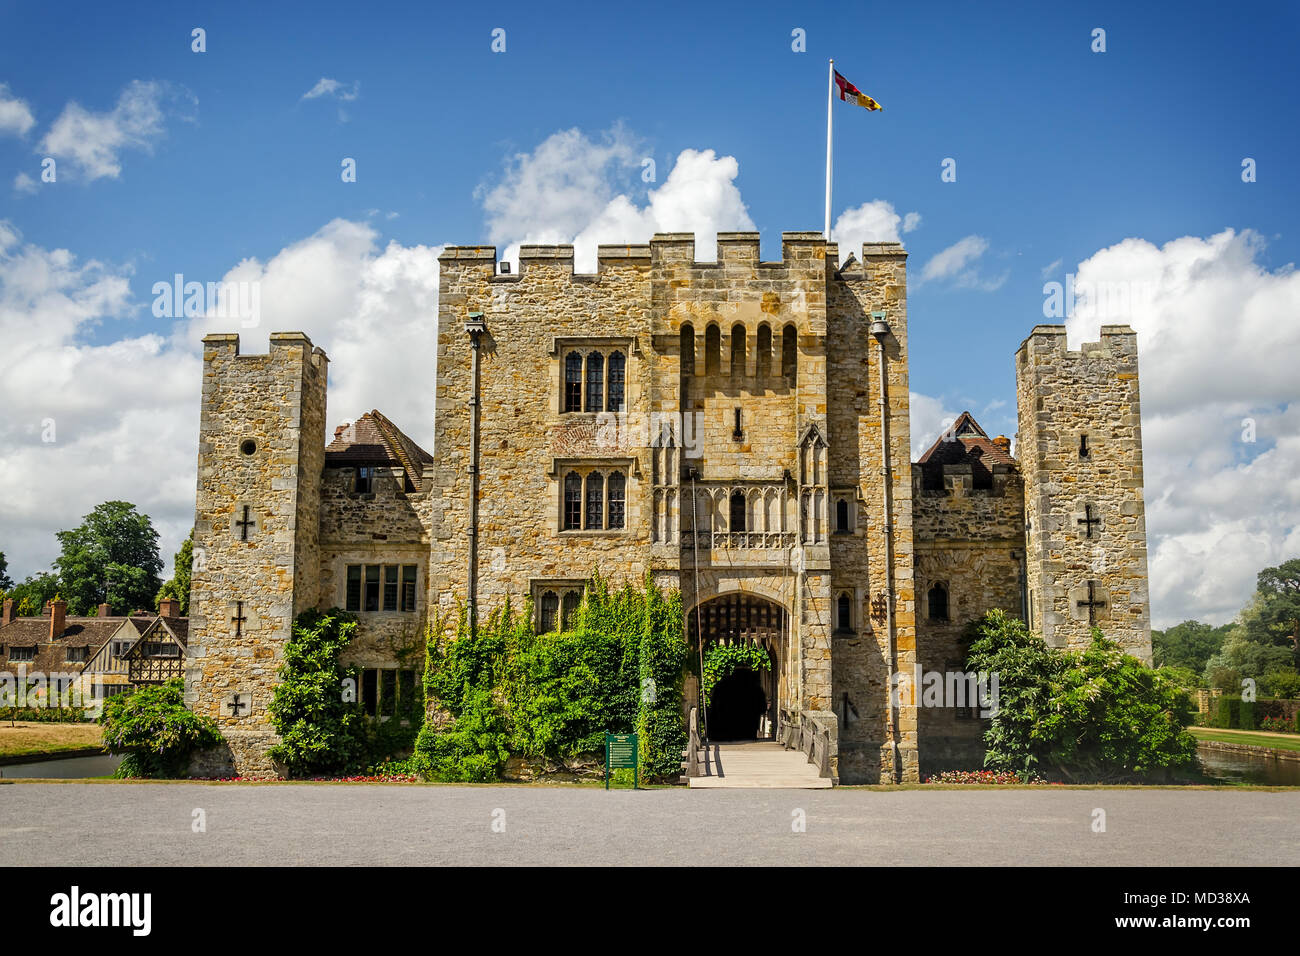 Hever Castle, United Kingdom - June 18, 2015: Panoramic view of Hever Castle and it's beautiful garden and once the childhood home of Anne Boleyn. - Stock Image